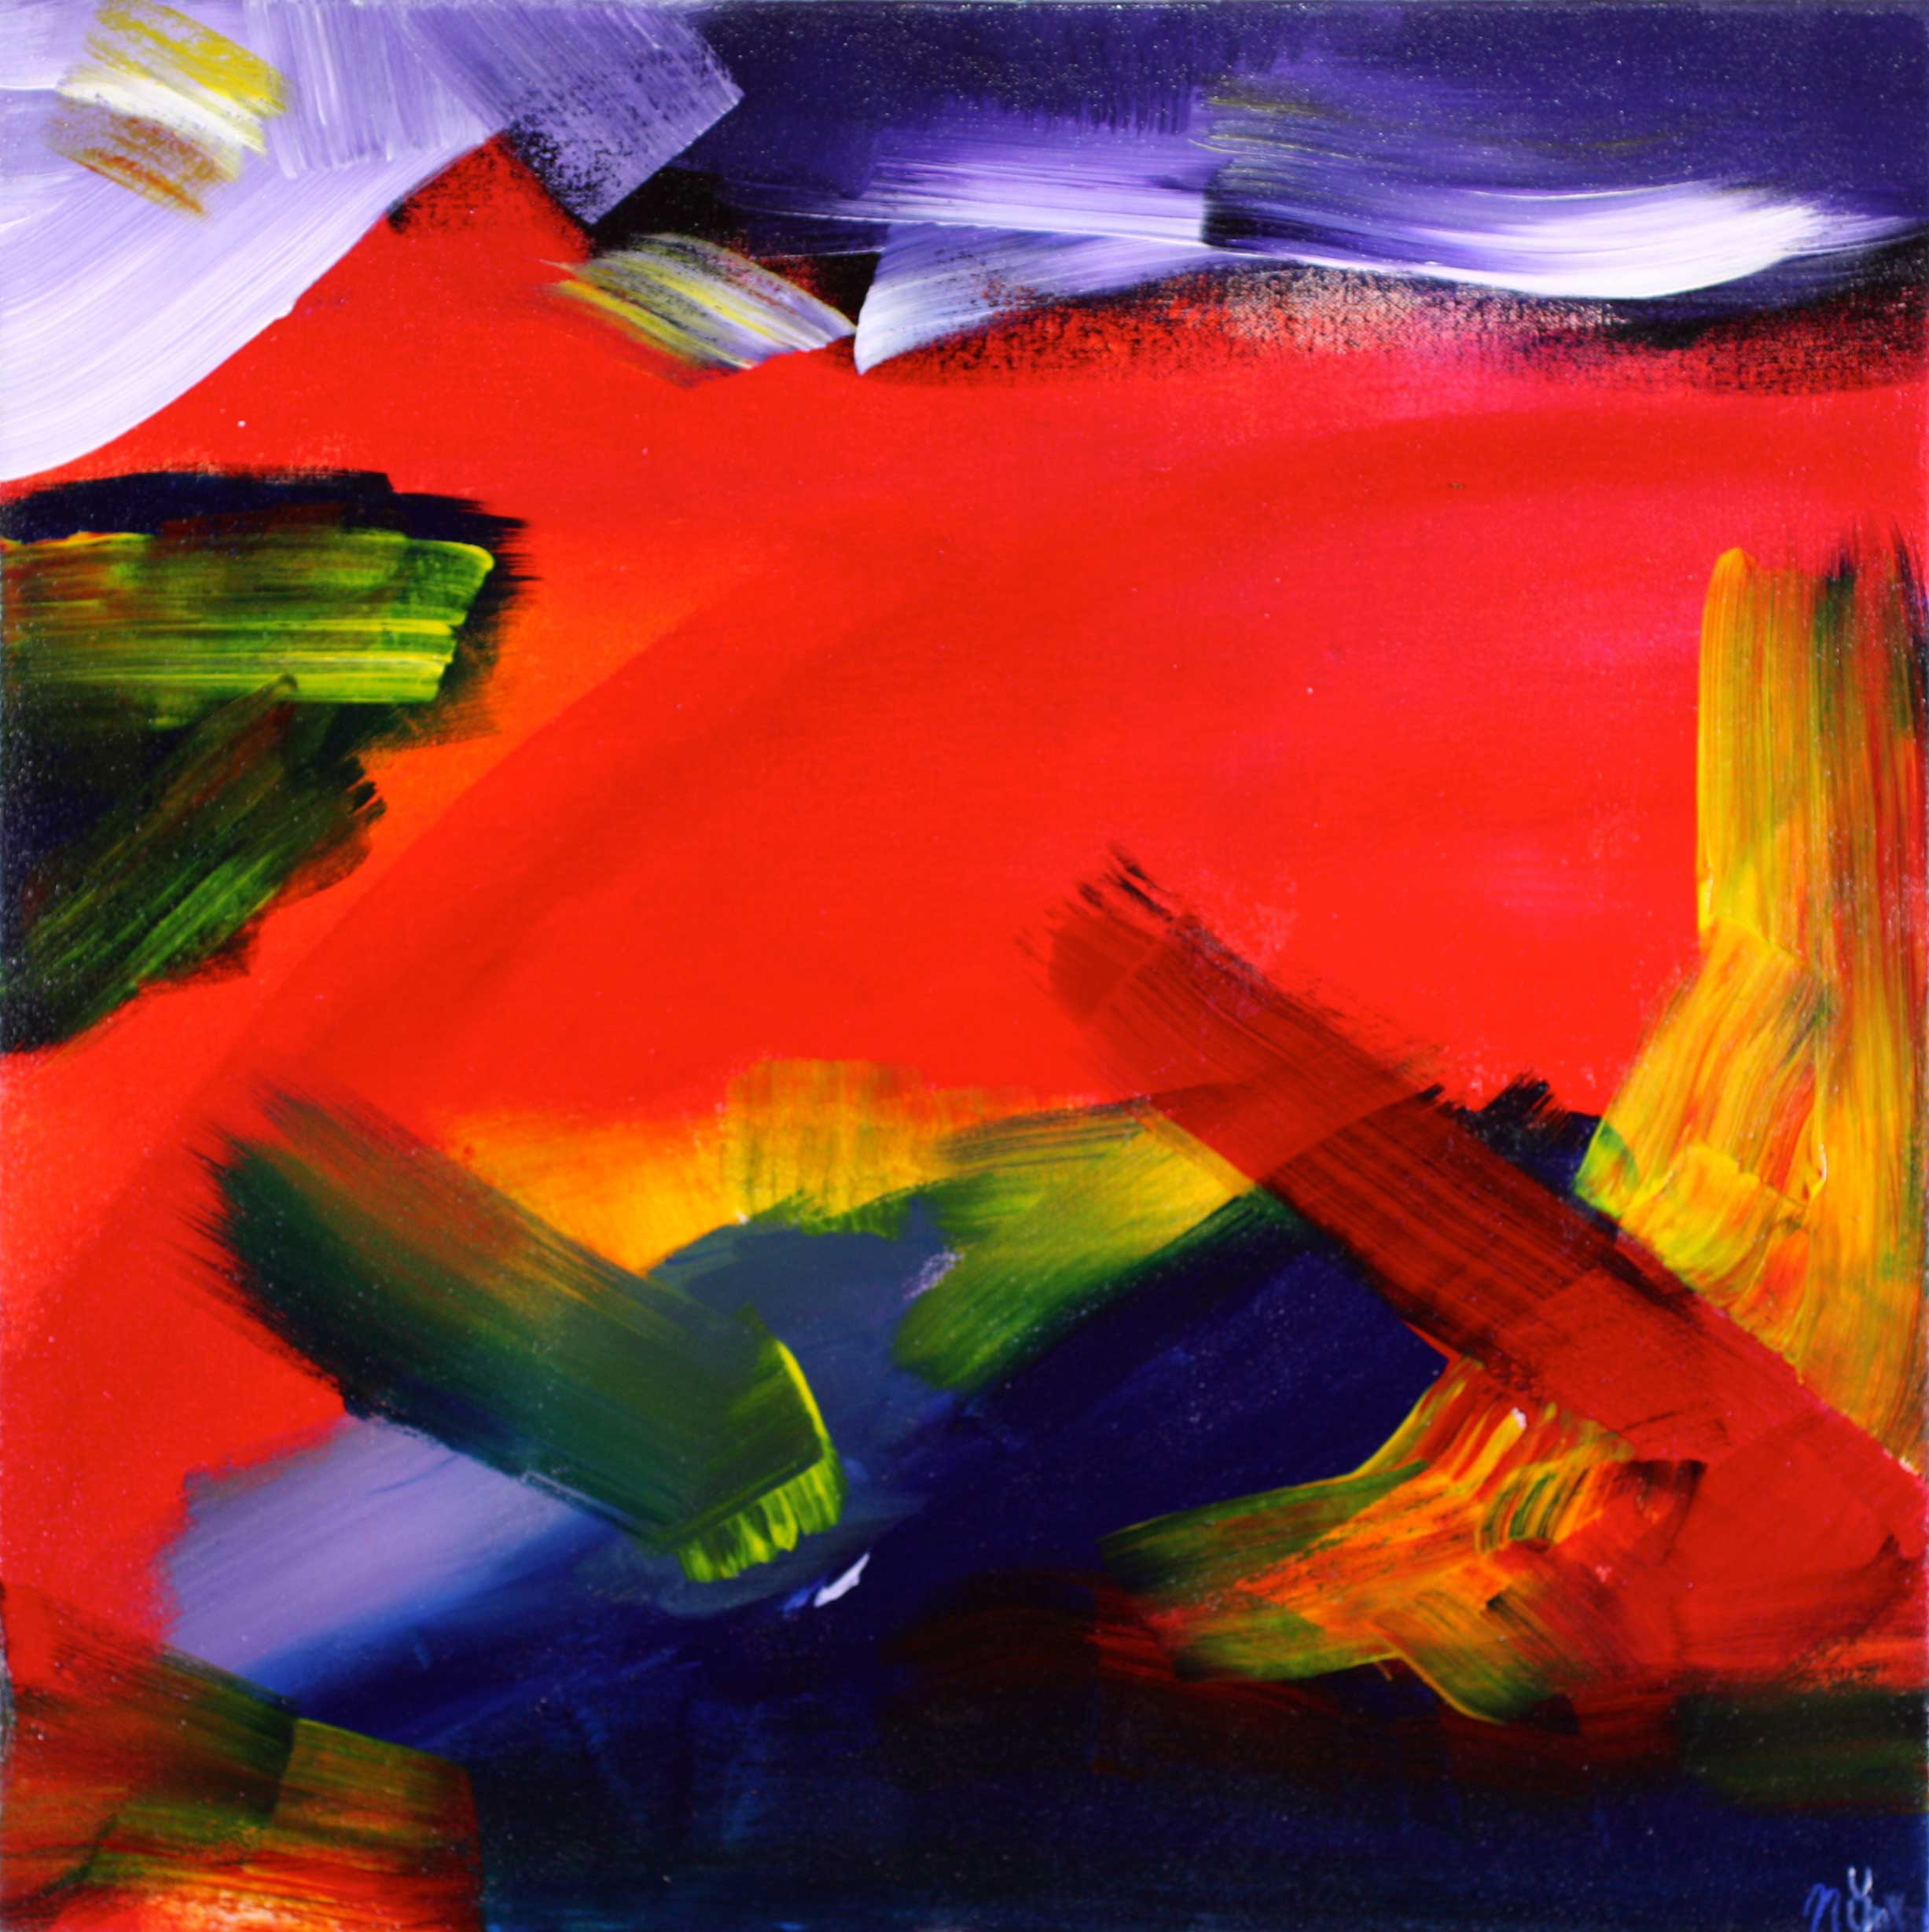 Los Angeles abstract artist - Nestor Toro - Fiery Dream has been SOLD to a collector